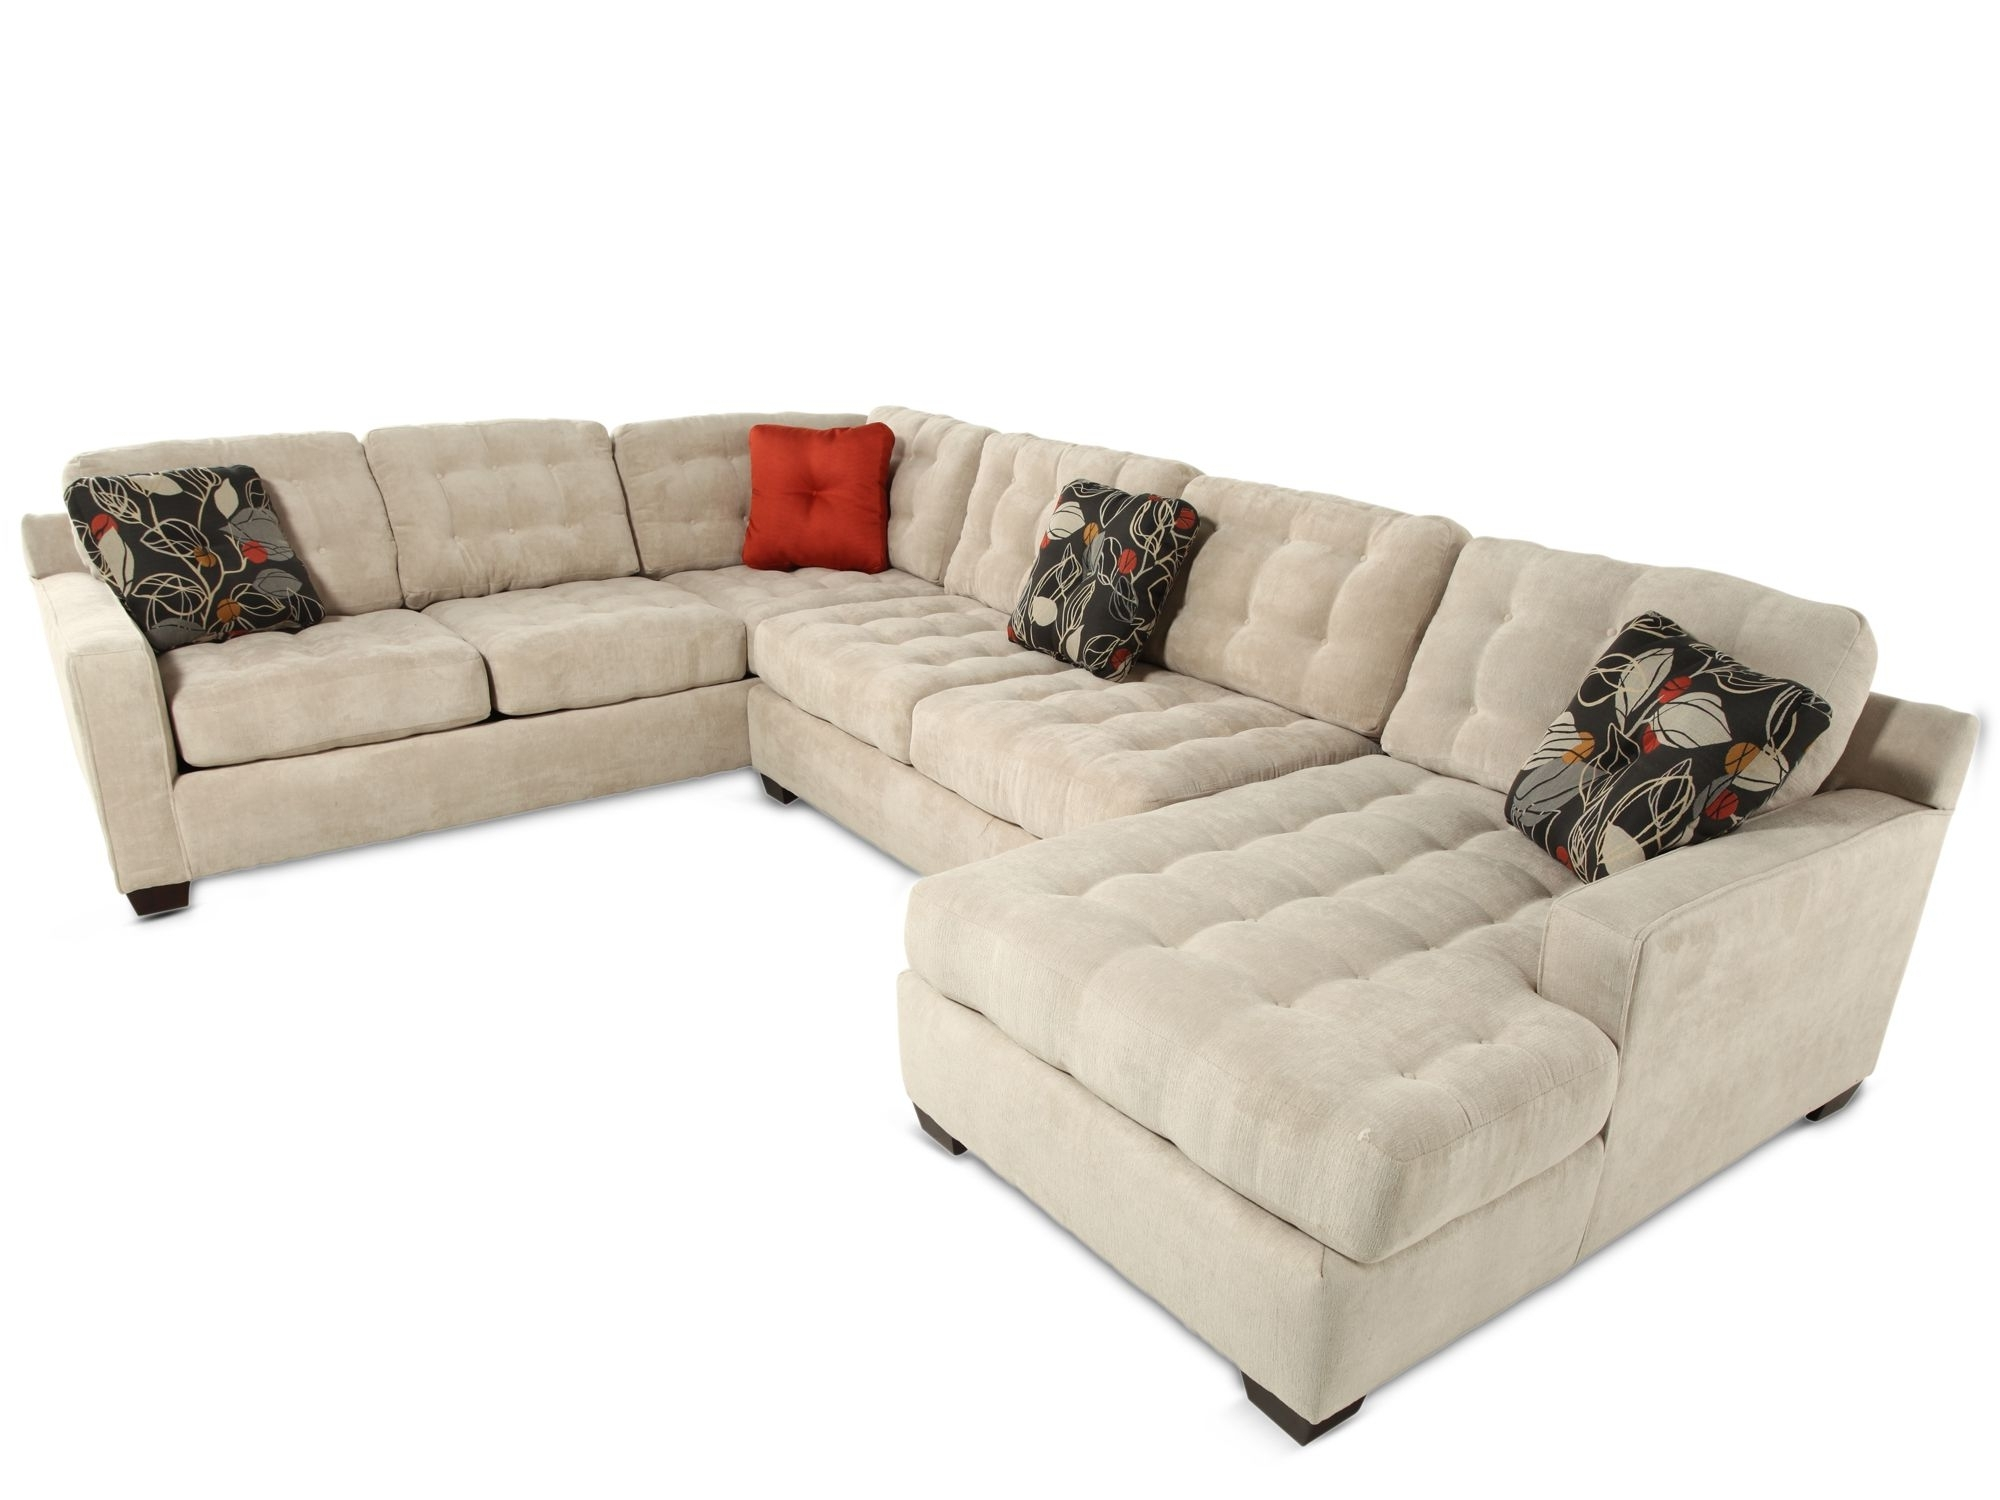 Widely Used Extraordinary Deep Seated Sofas Sectionals 33 In Sectional Sofas Regarding Mathis Brothers Sectional Sofas (View 20 of 20)